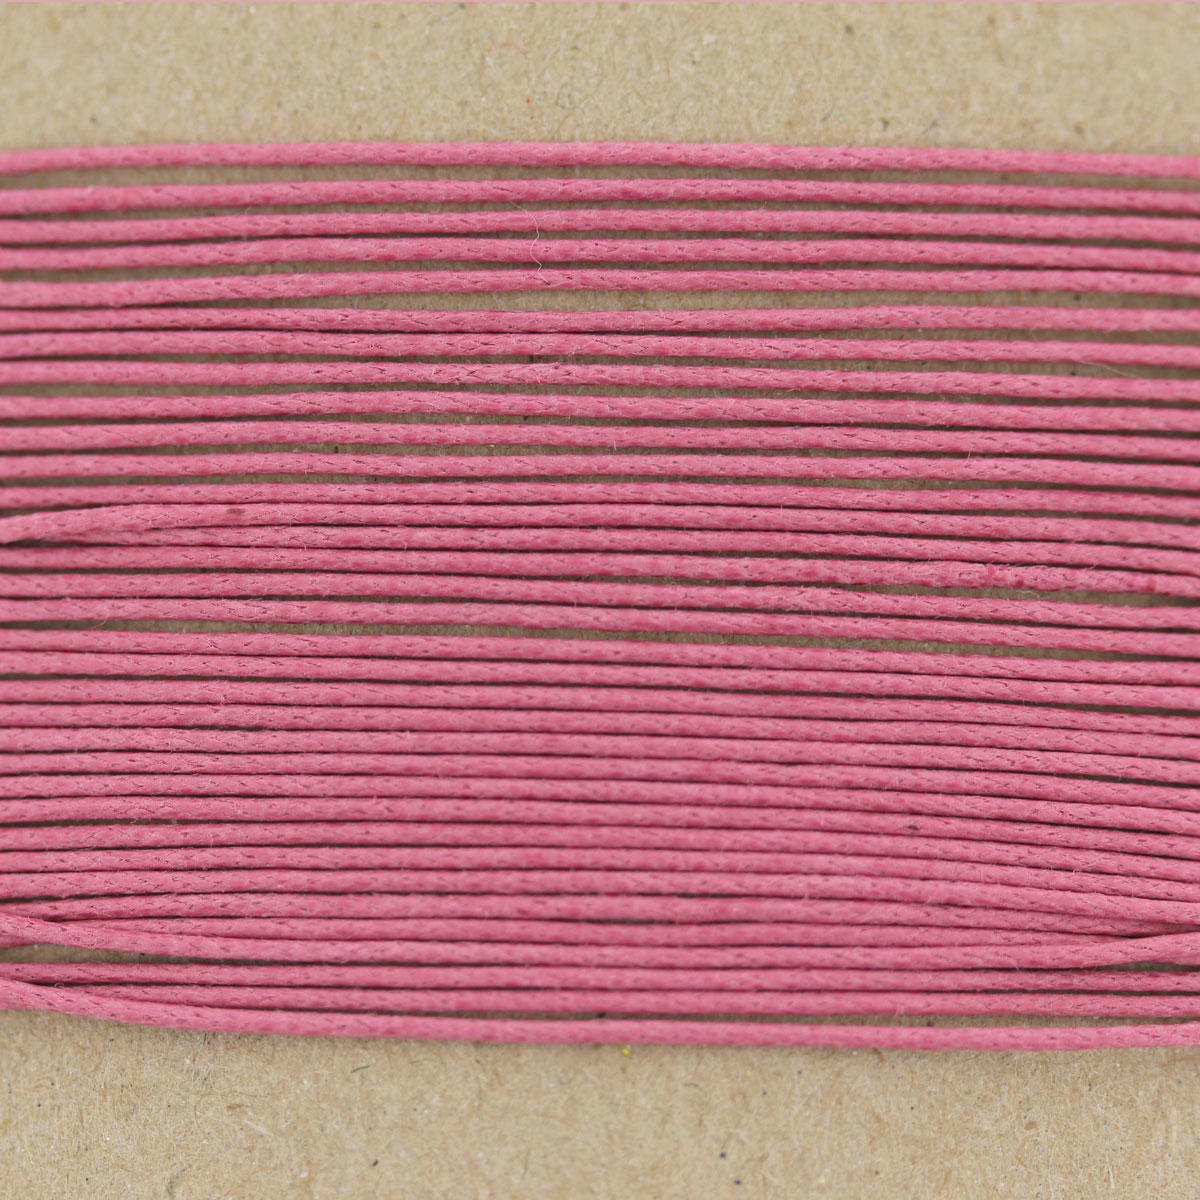 Rose Pink Thin Cotton Cord